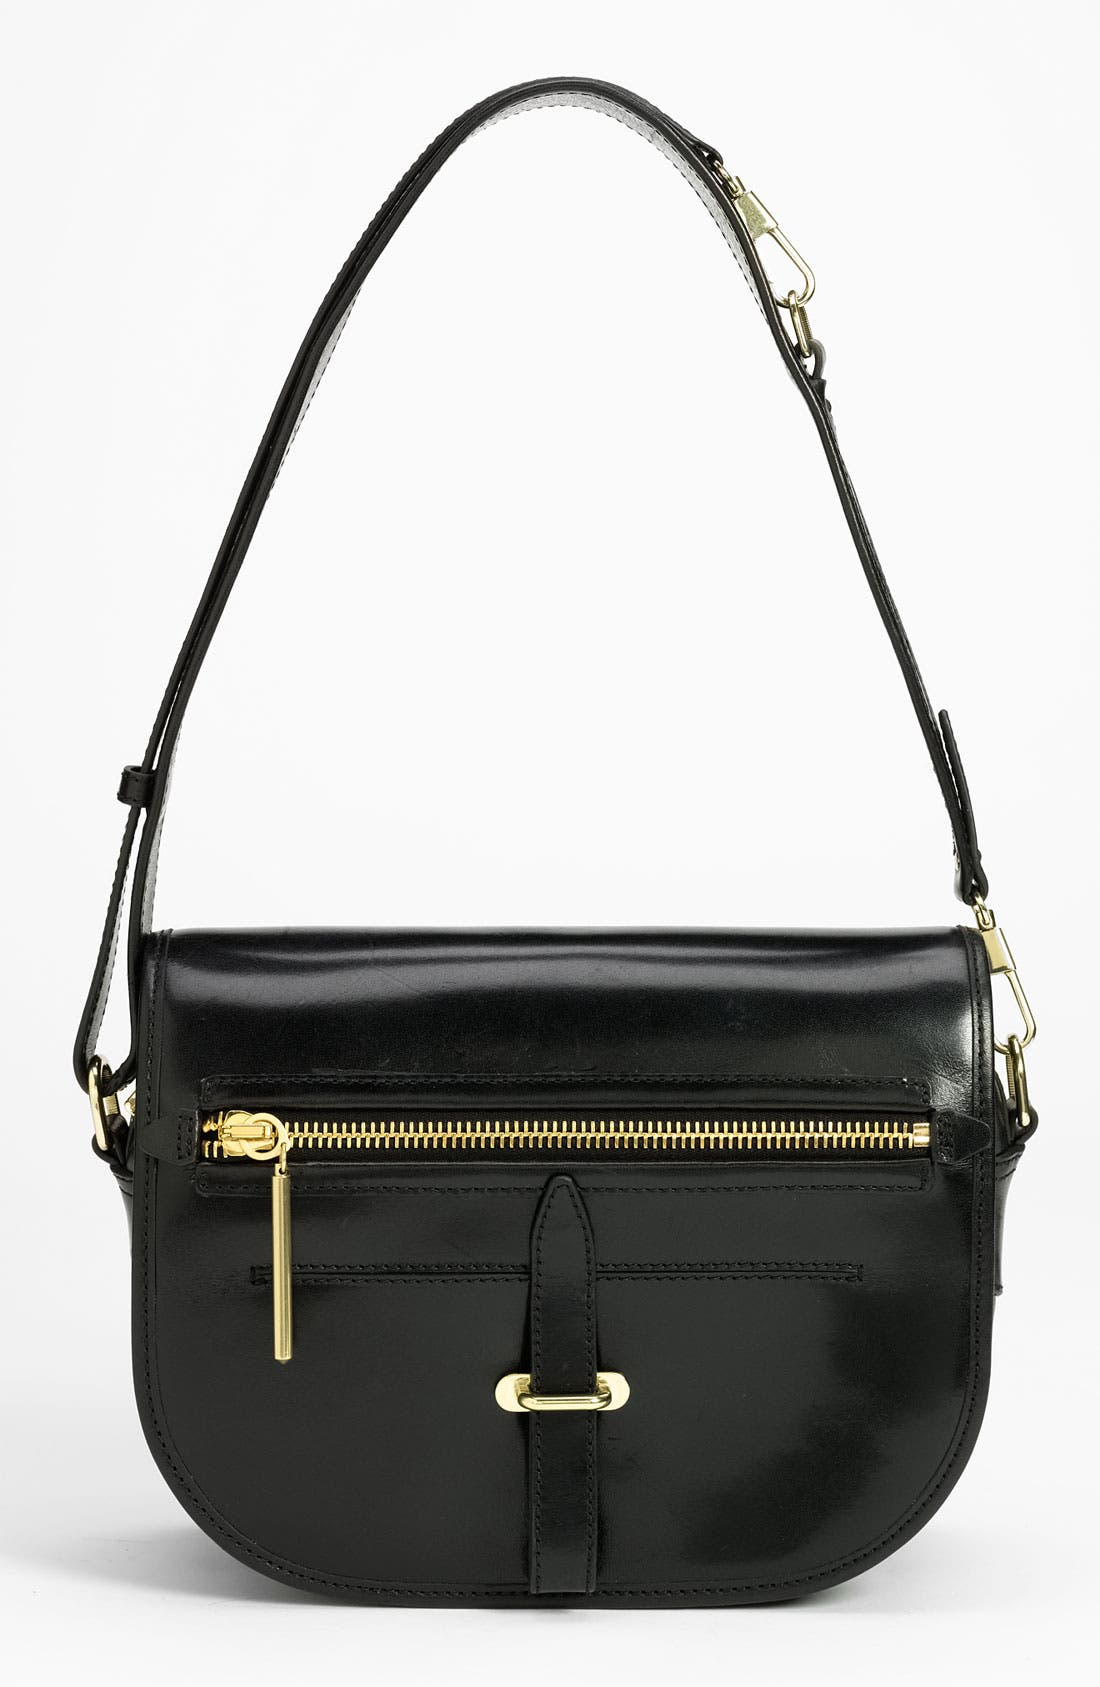 Main Image - 3.1 Phillip Lim 'Vendetta - Large' Leather Shoulder Bag